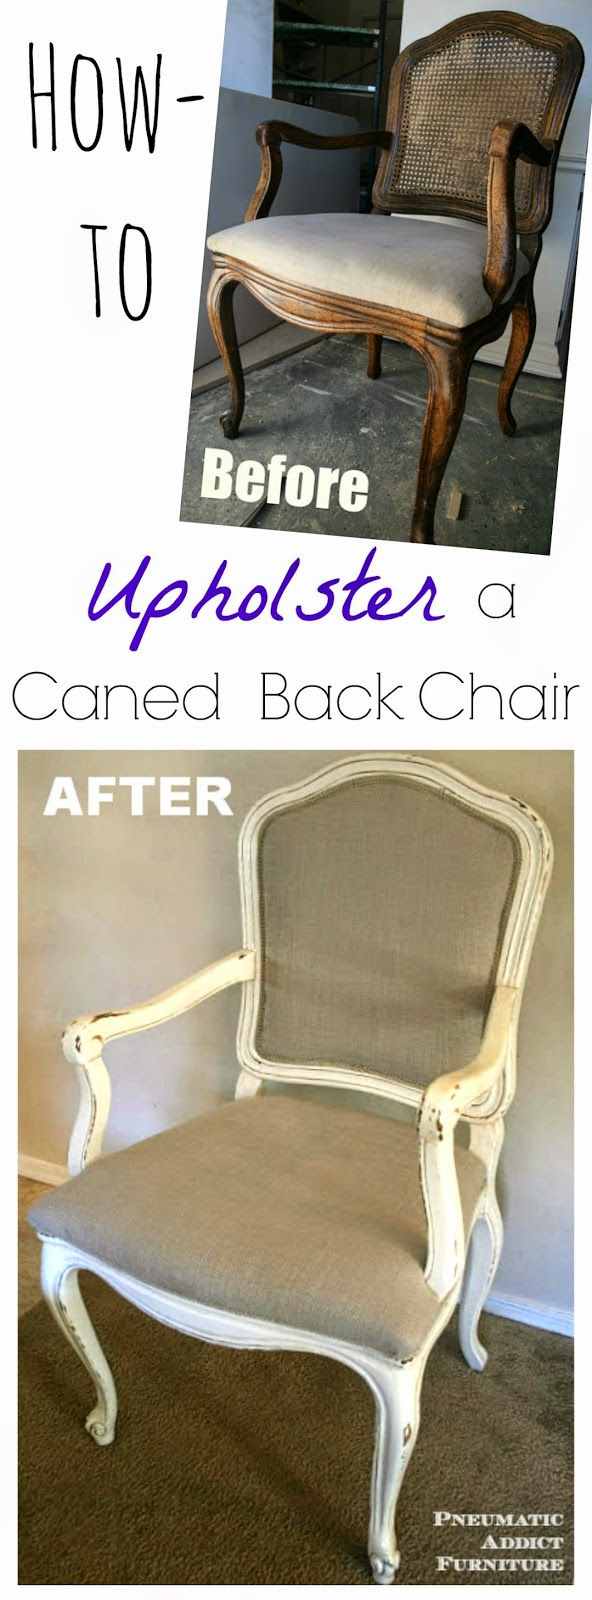 How to Upholster a Caned Back Chair: Tutorial #furniturebuilding